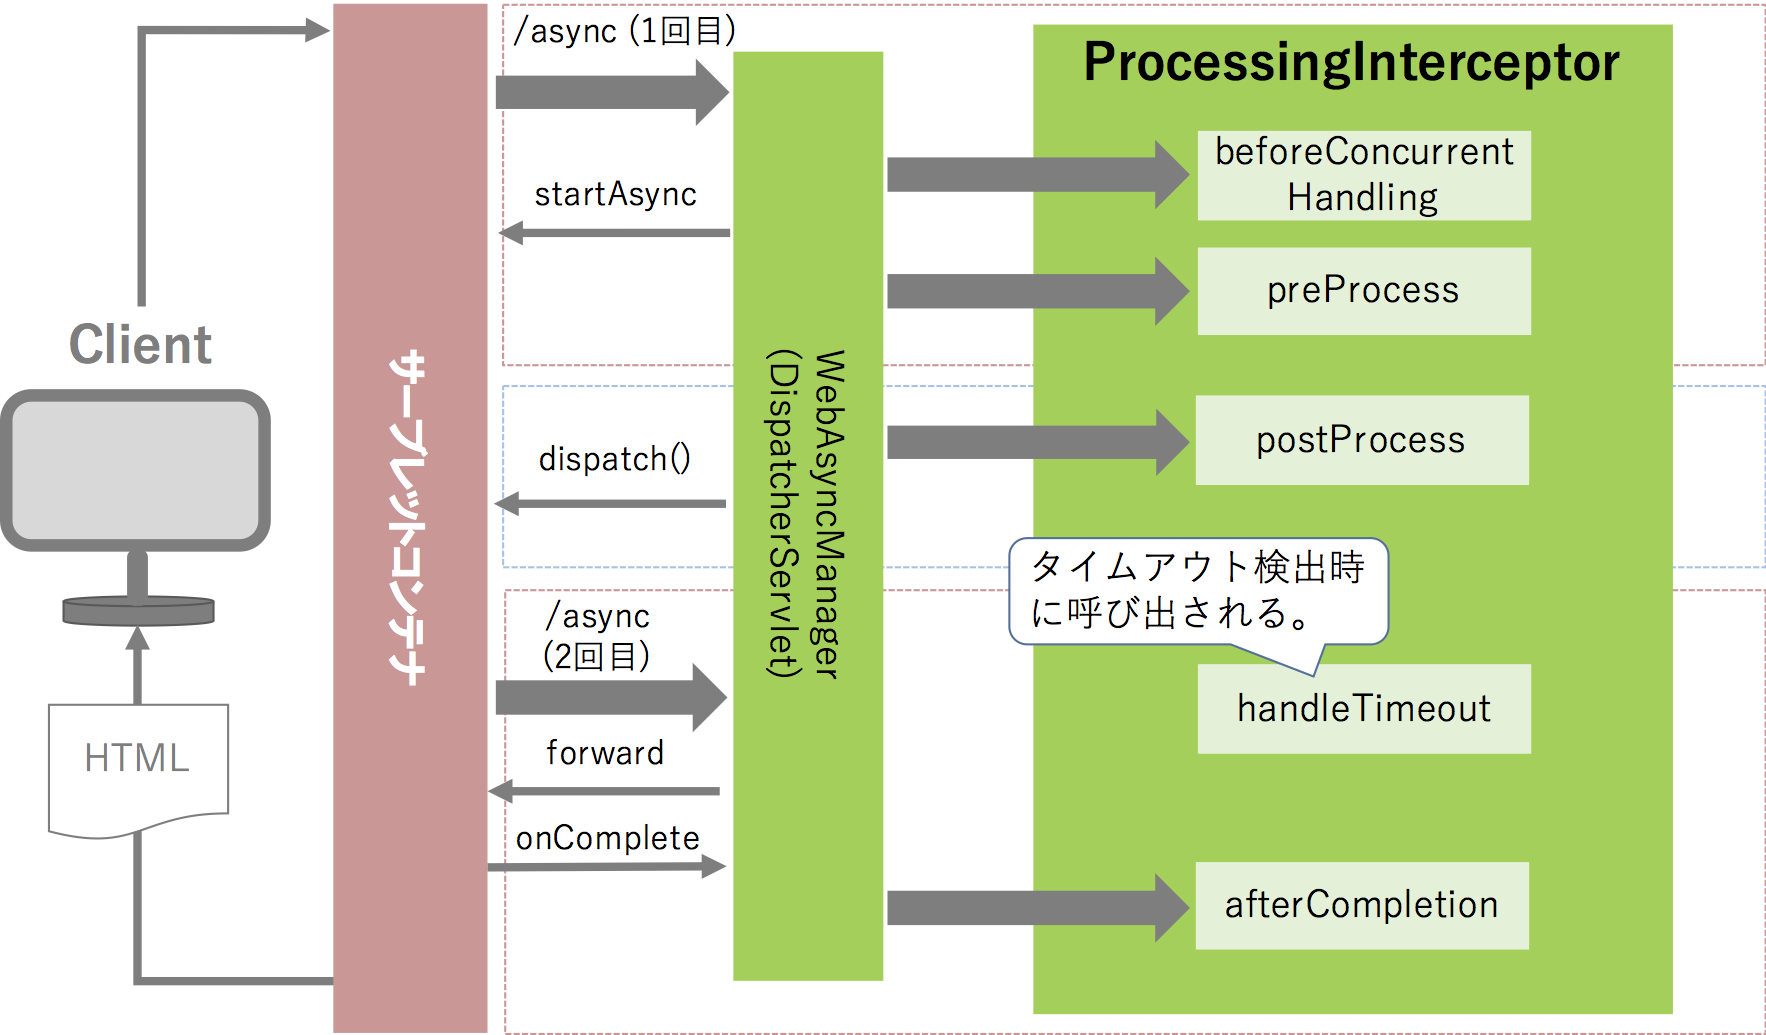 spring-mvc-async-processing-interceptor.png